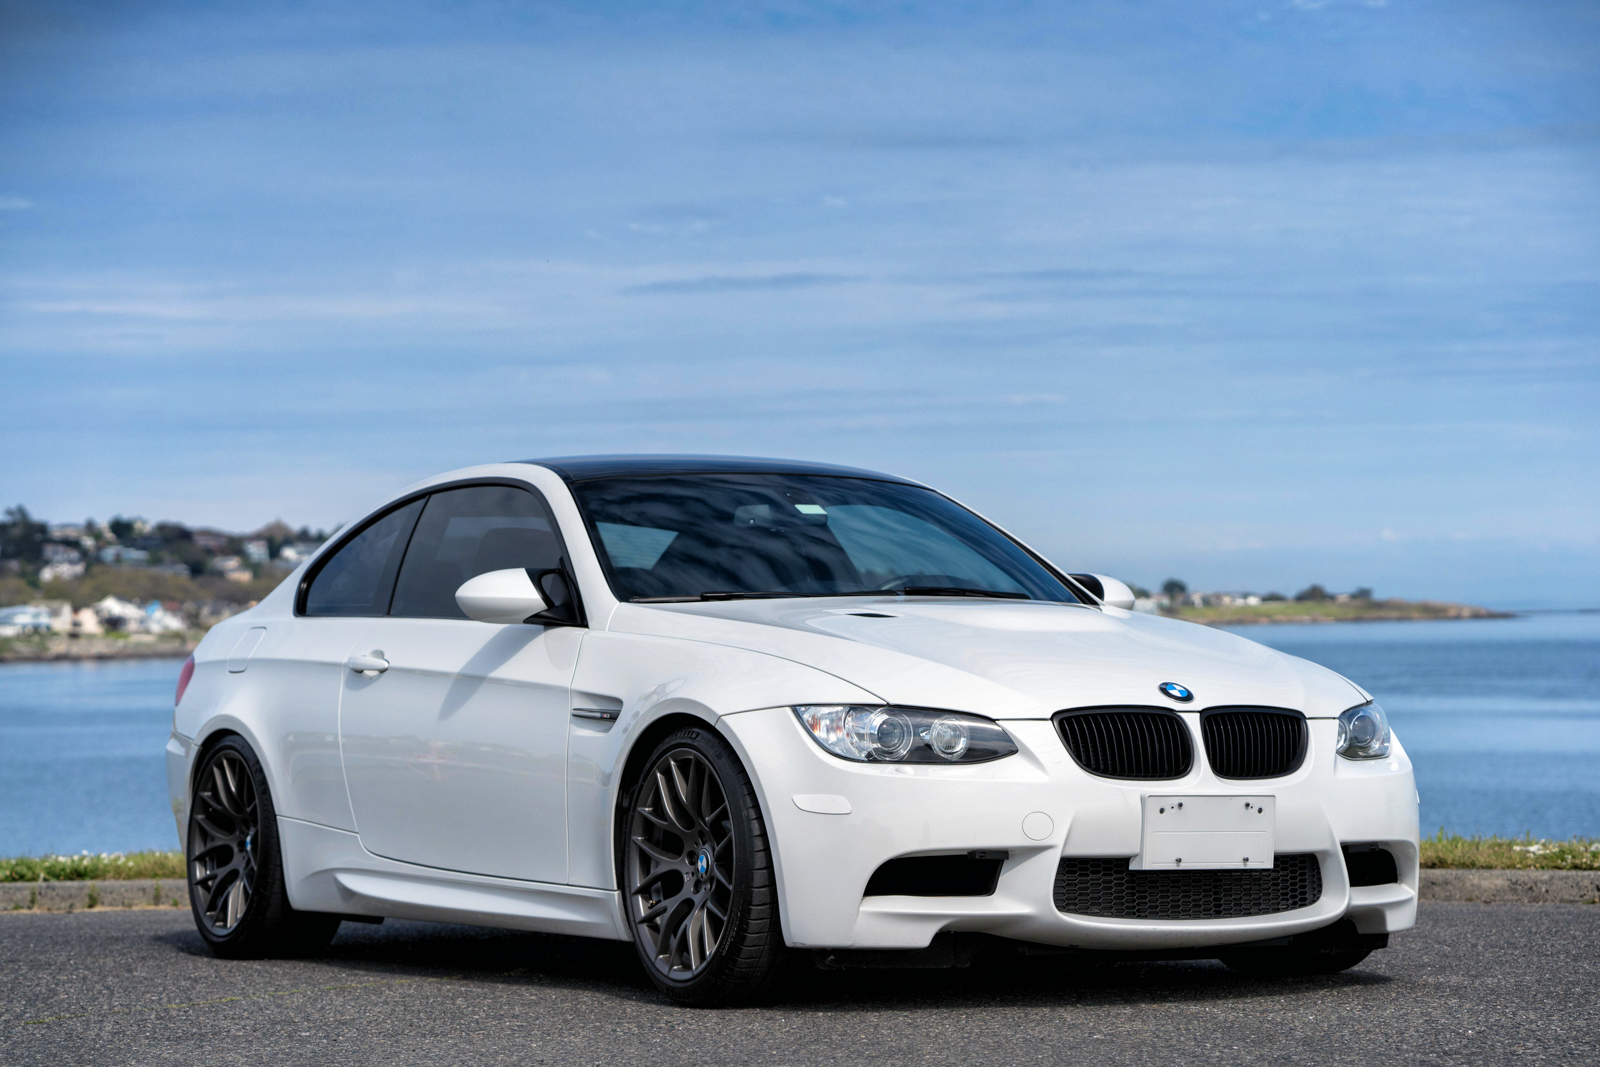 2013 bmw m3 coupe e92 silver arrow cars ltd. Black Bedroom Furniture Sets. Home Design Ideas